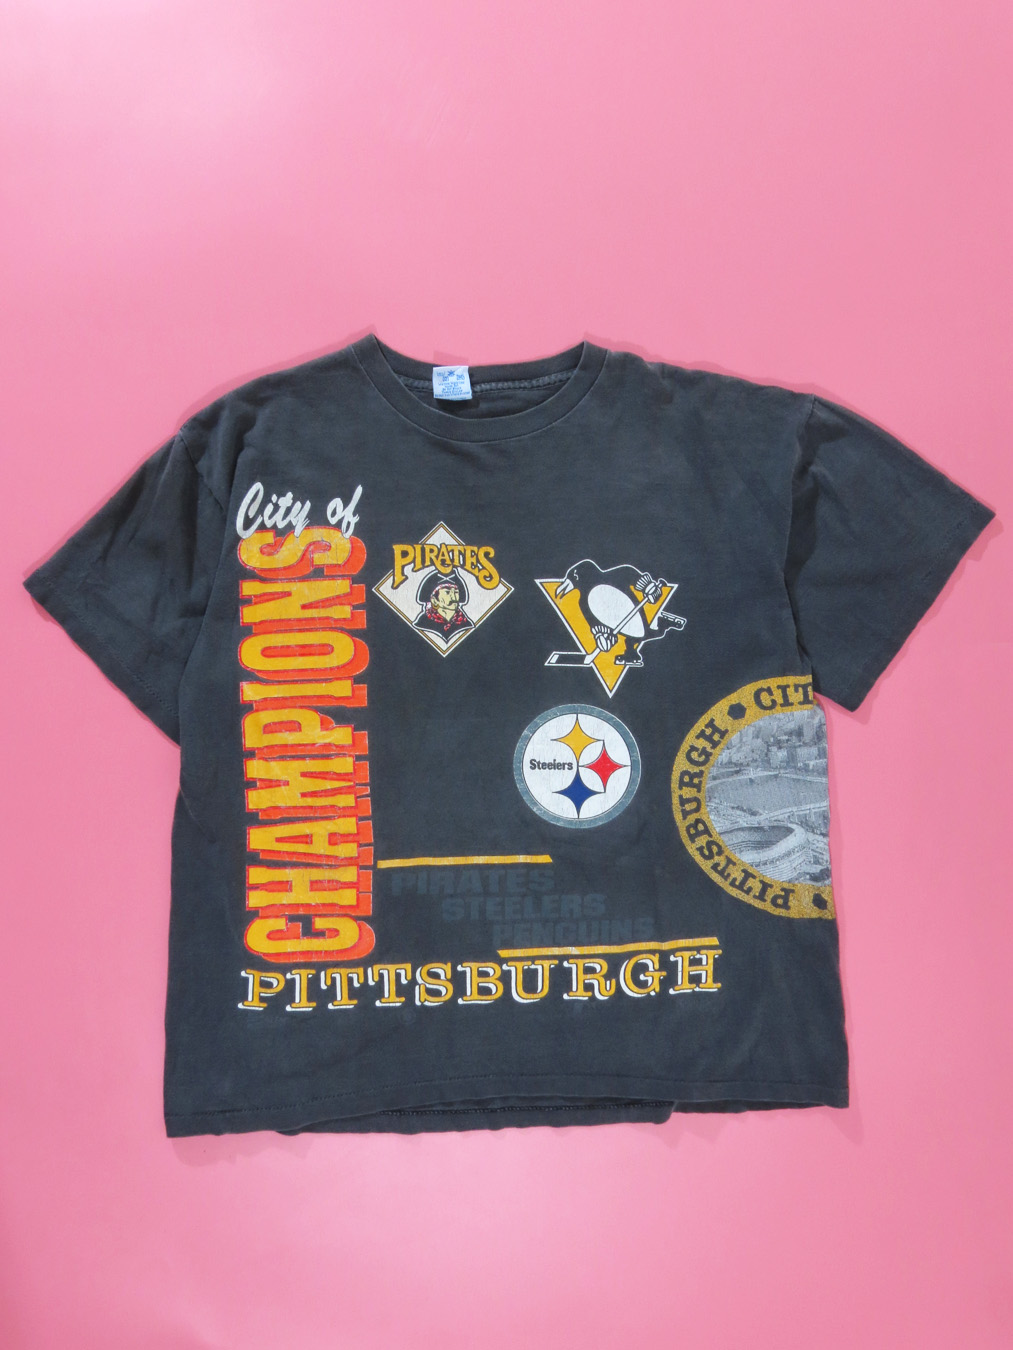 on sale efd69 95b97 1995 City Of Champions Pittsburgh Pirates Steelers Penguins Shirt